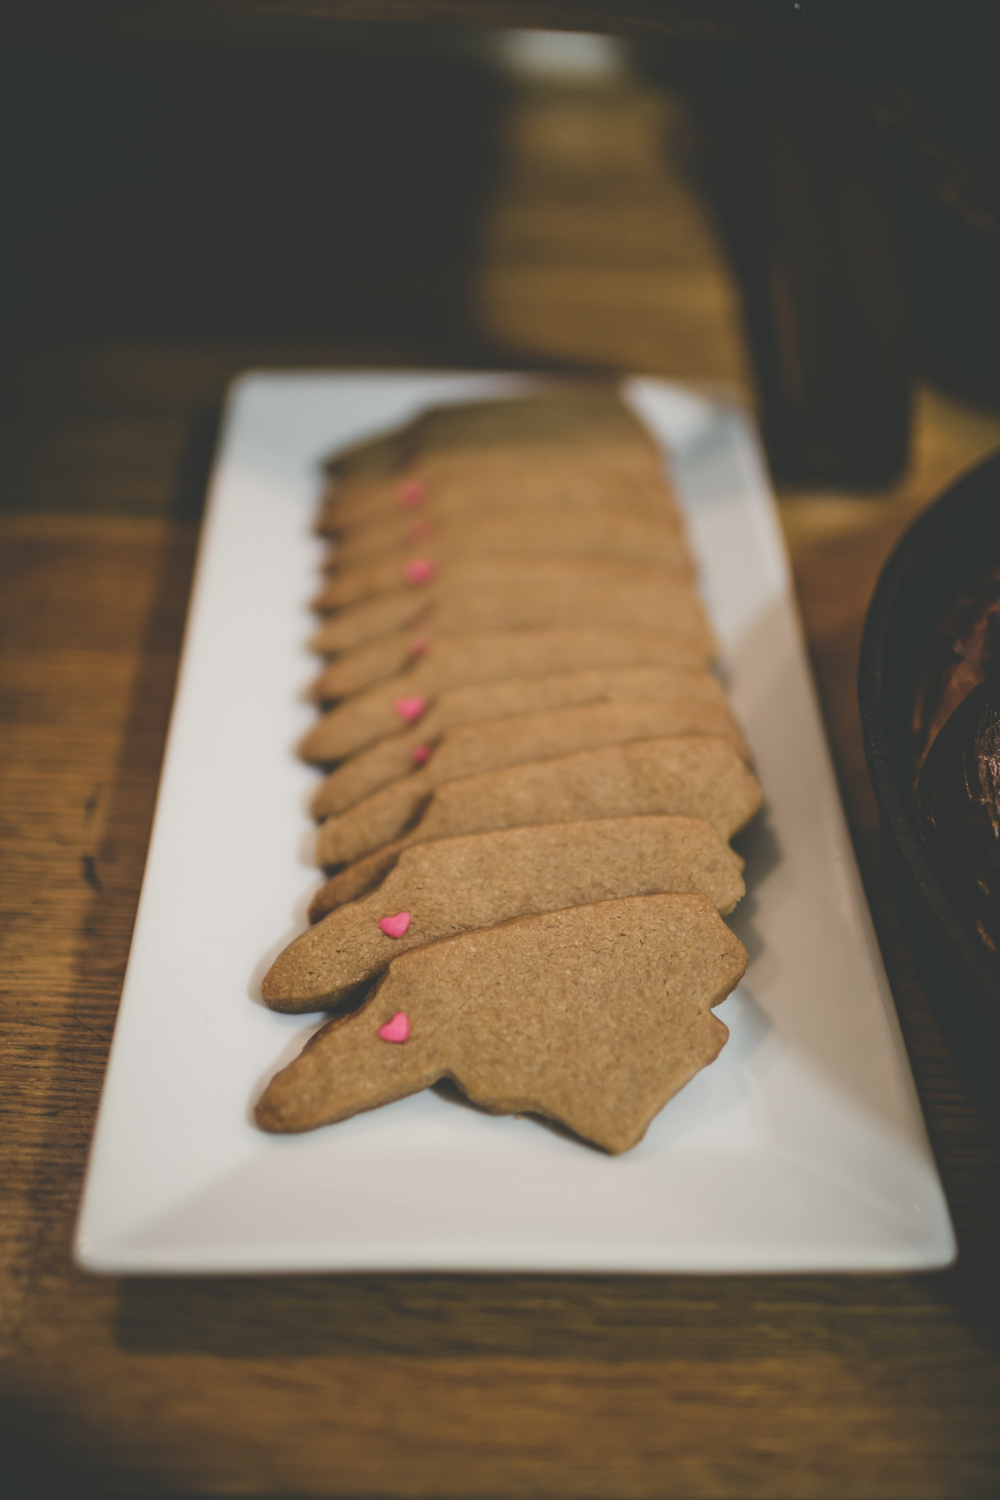 Asheville Folk Gatherings + Formations of Mental Objects. North Carolina shaped maple cookies. Photography by Nathan Rivers.